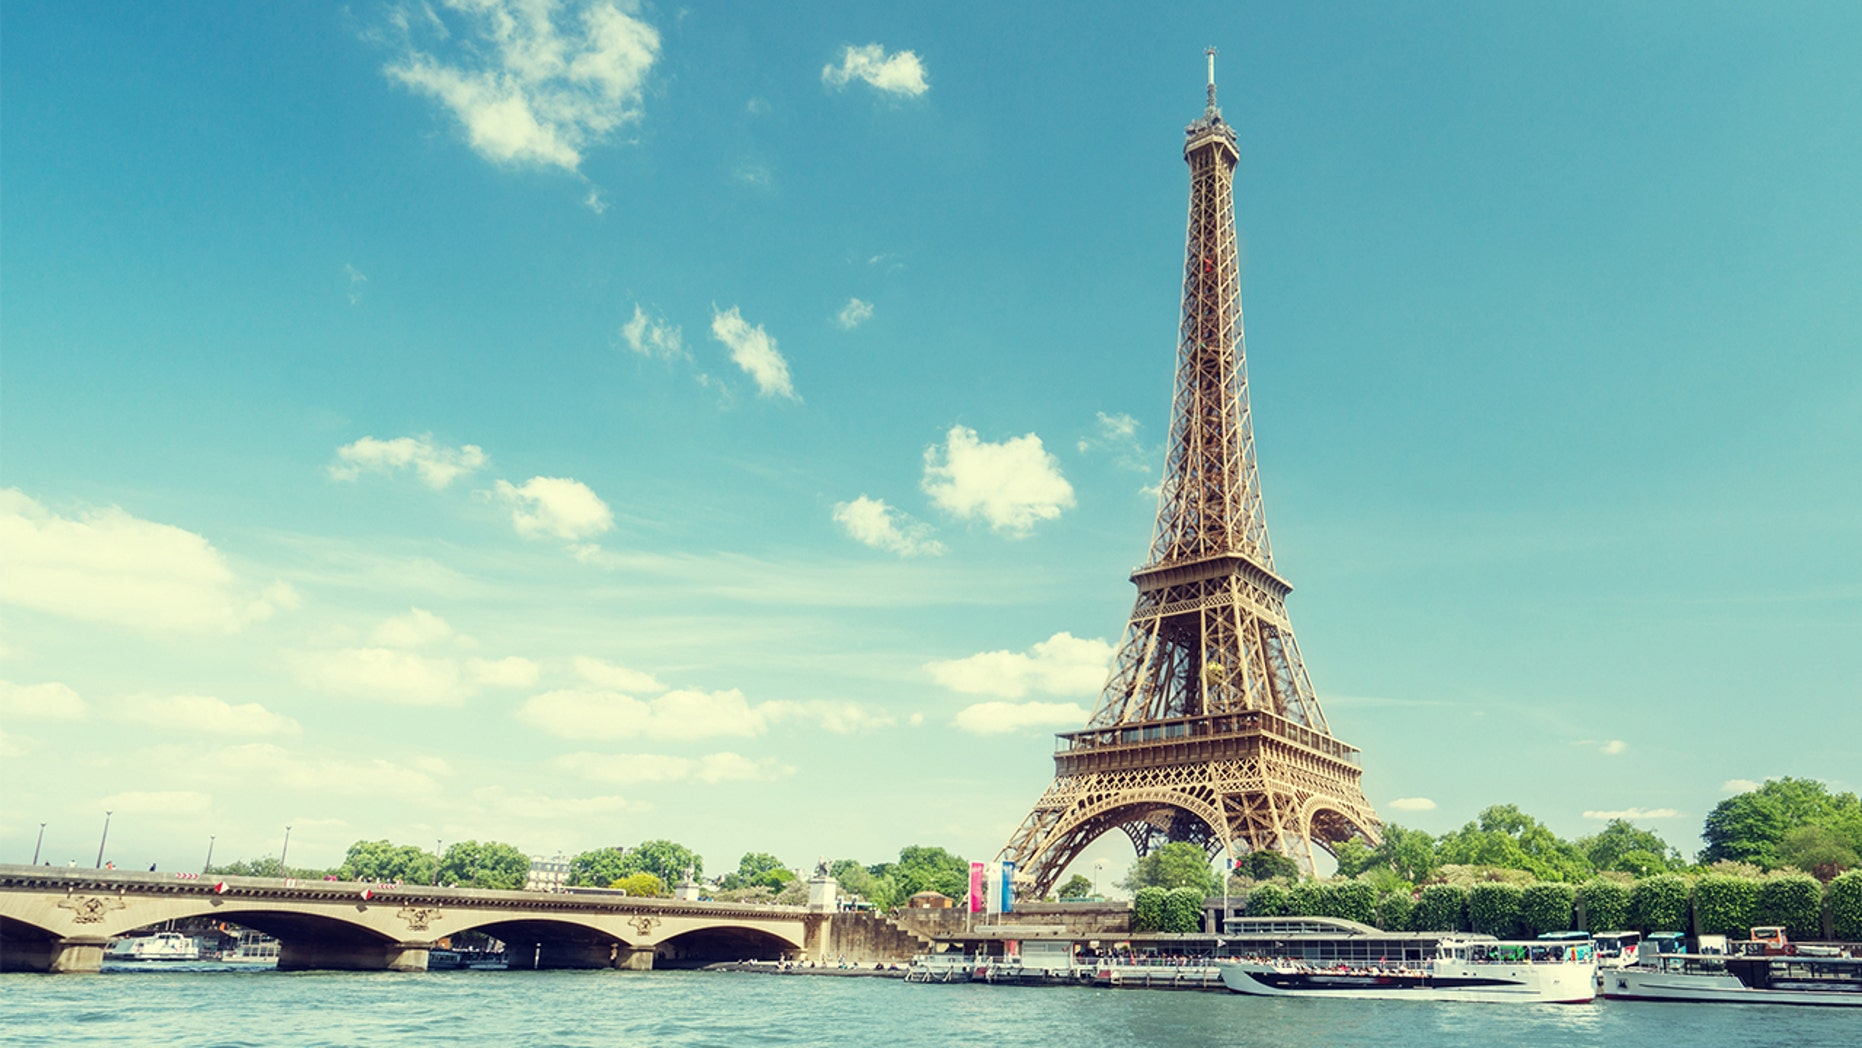 The Eiffel Tower might not look like this for much longer.